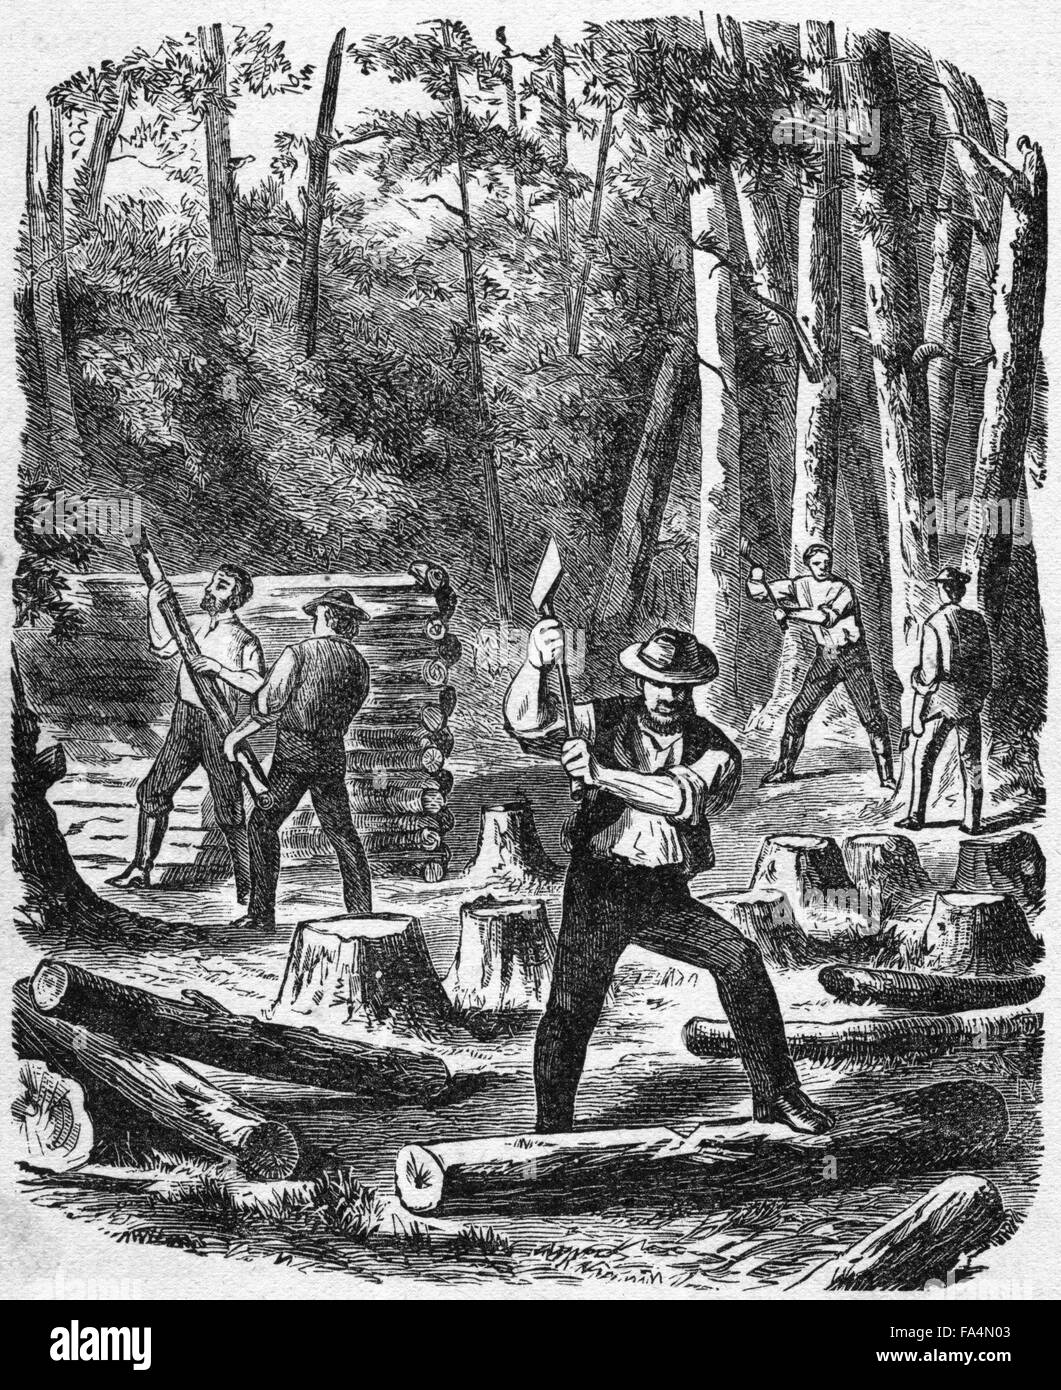 """Building the First House in Jamestown"" Book Illustration from ""Indian Horrors or Massacres of the Red Men"", by - Stock Image"